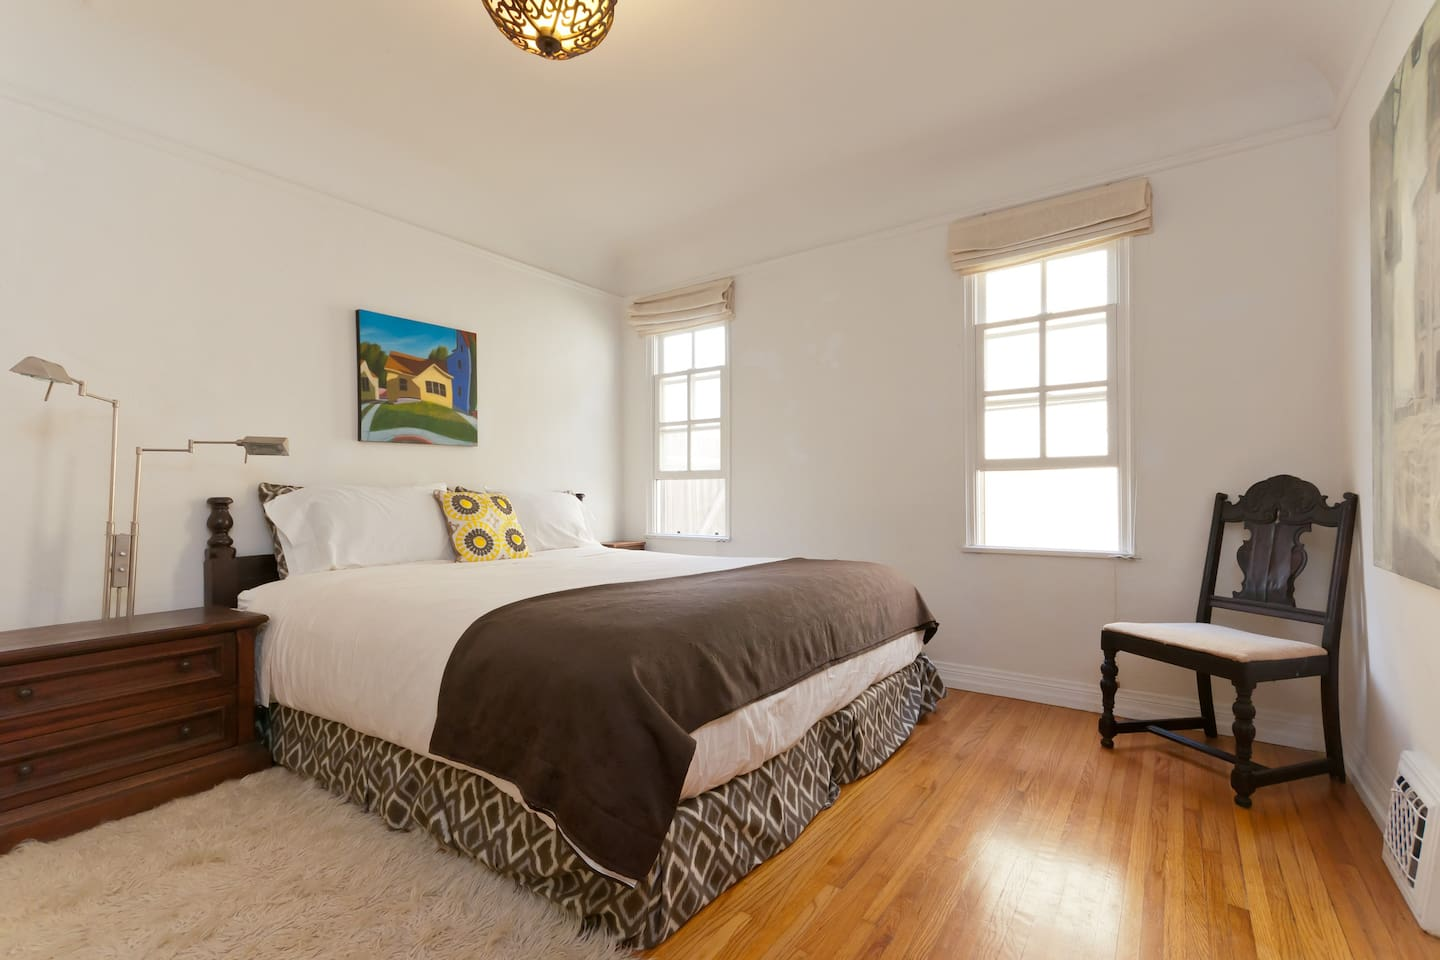 California room featuring all California based artists and a California king bed